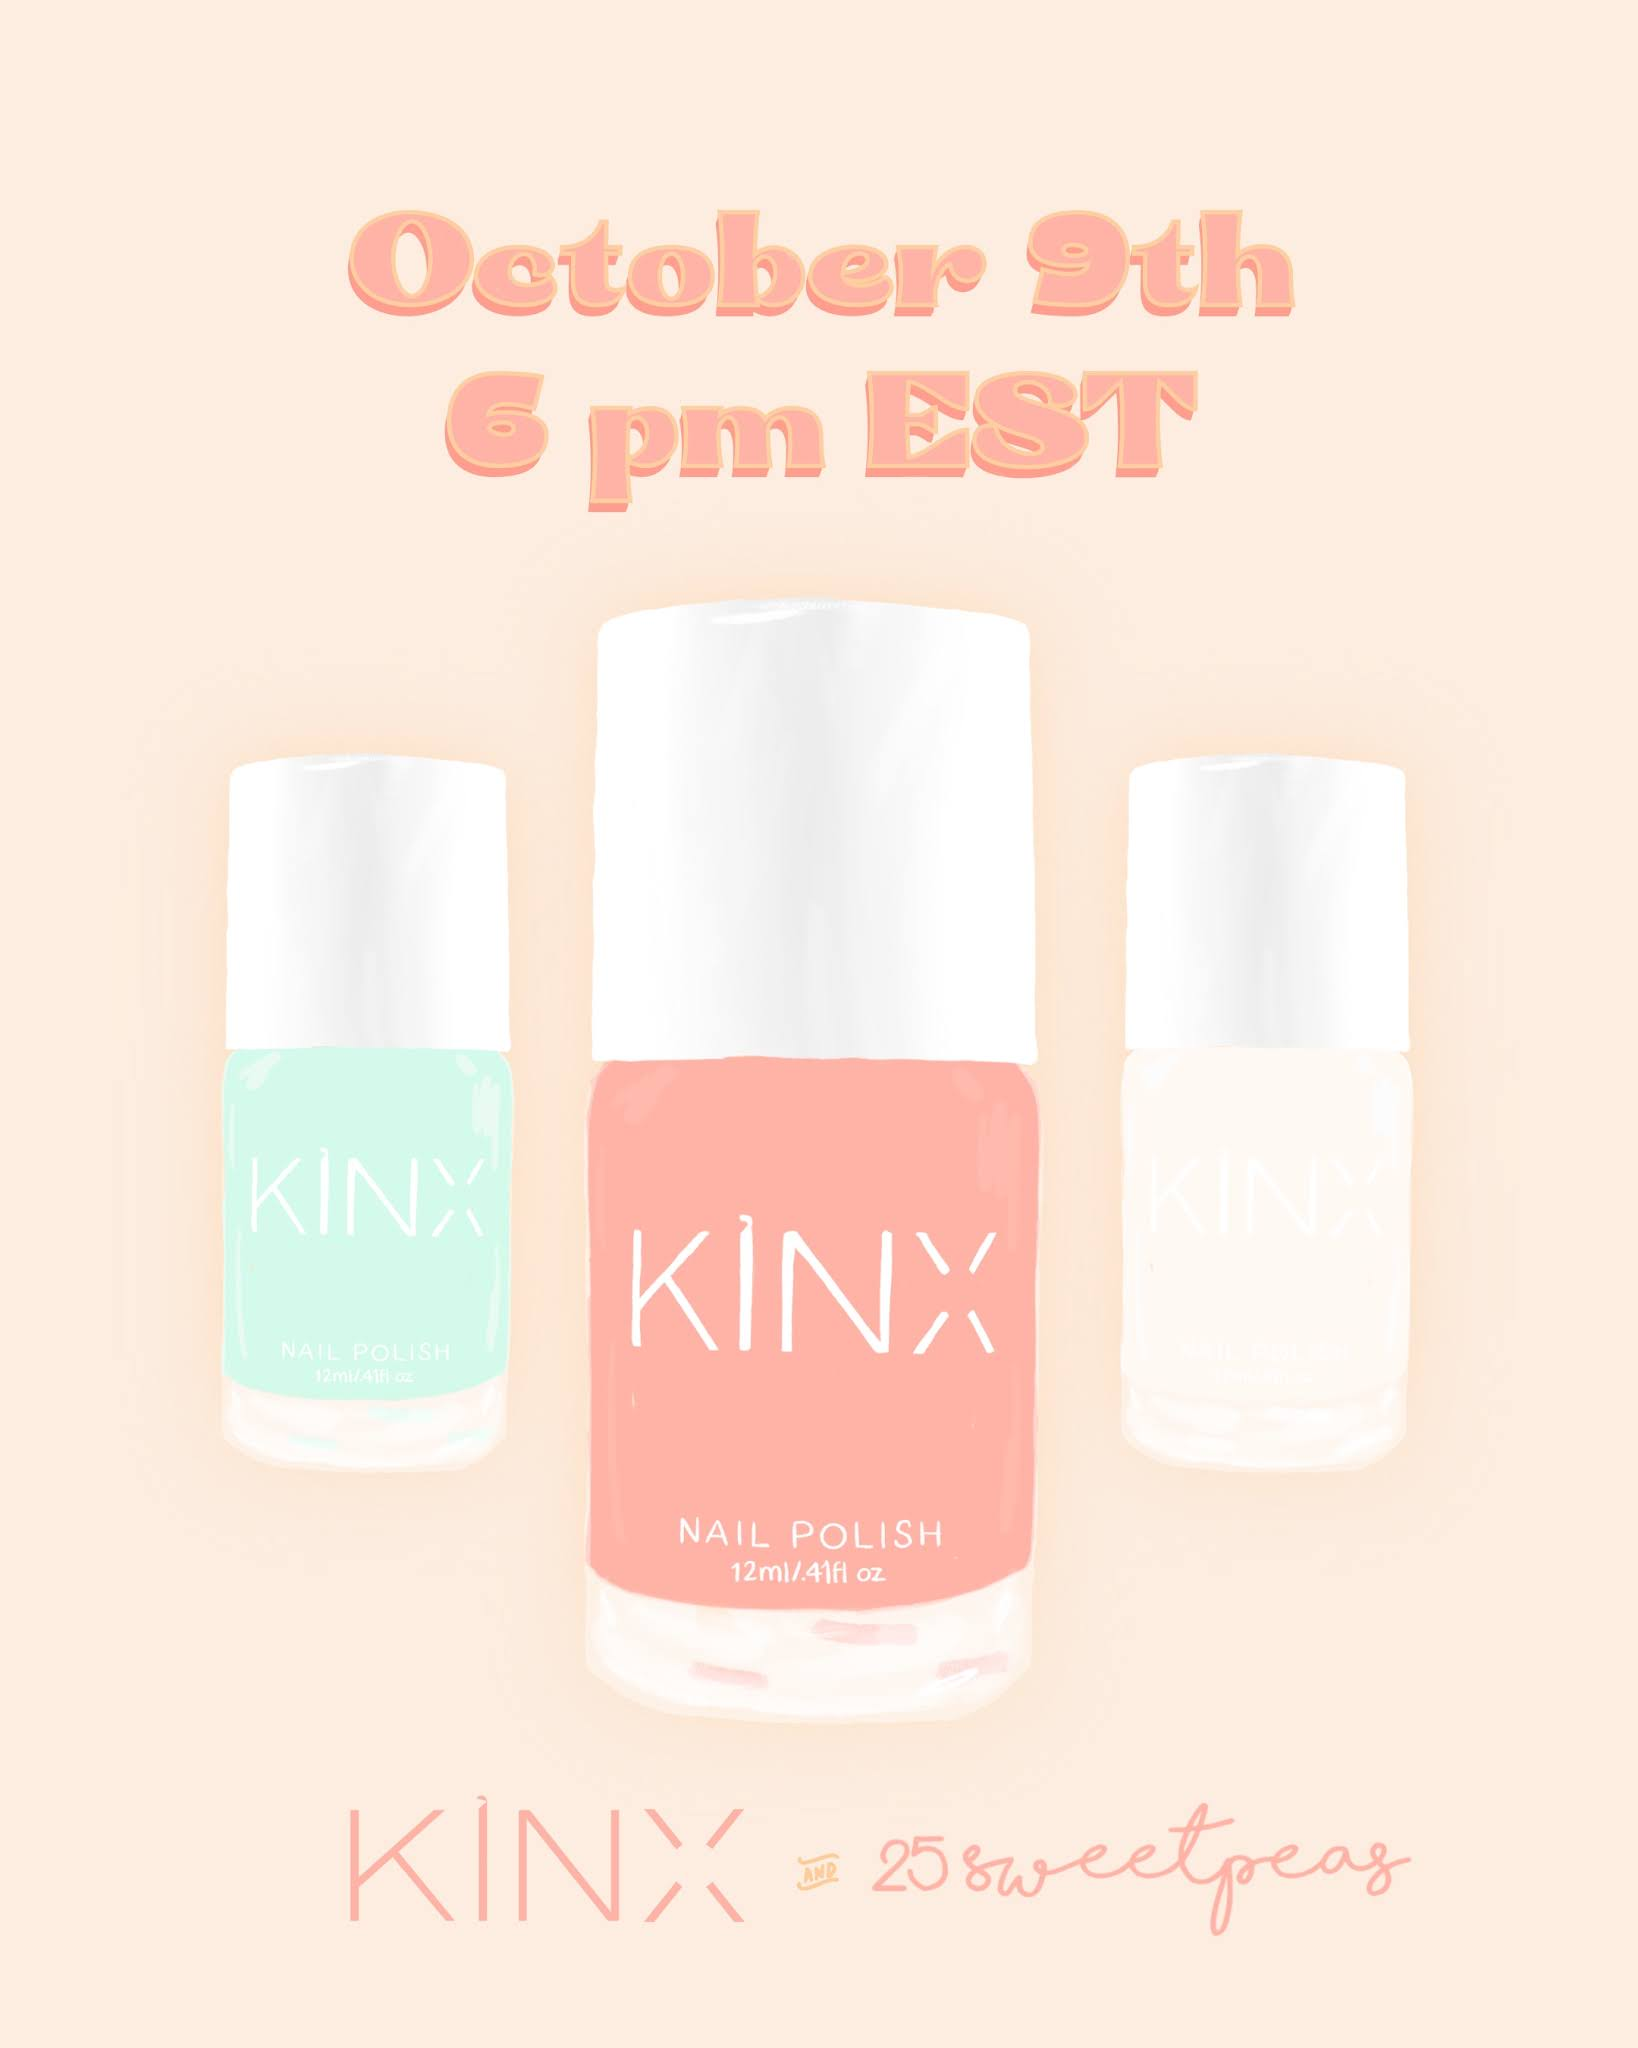 25 Sweetpeas Polish Release with Kinx Active